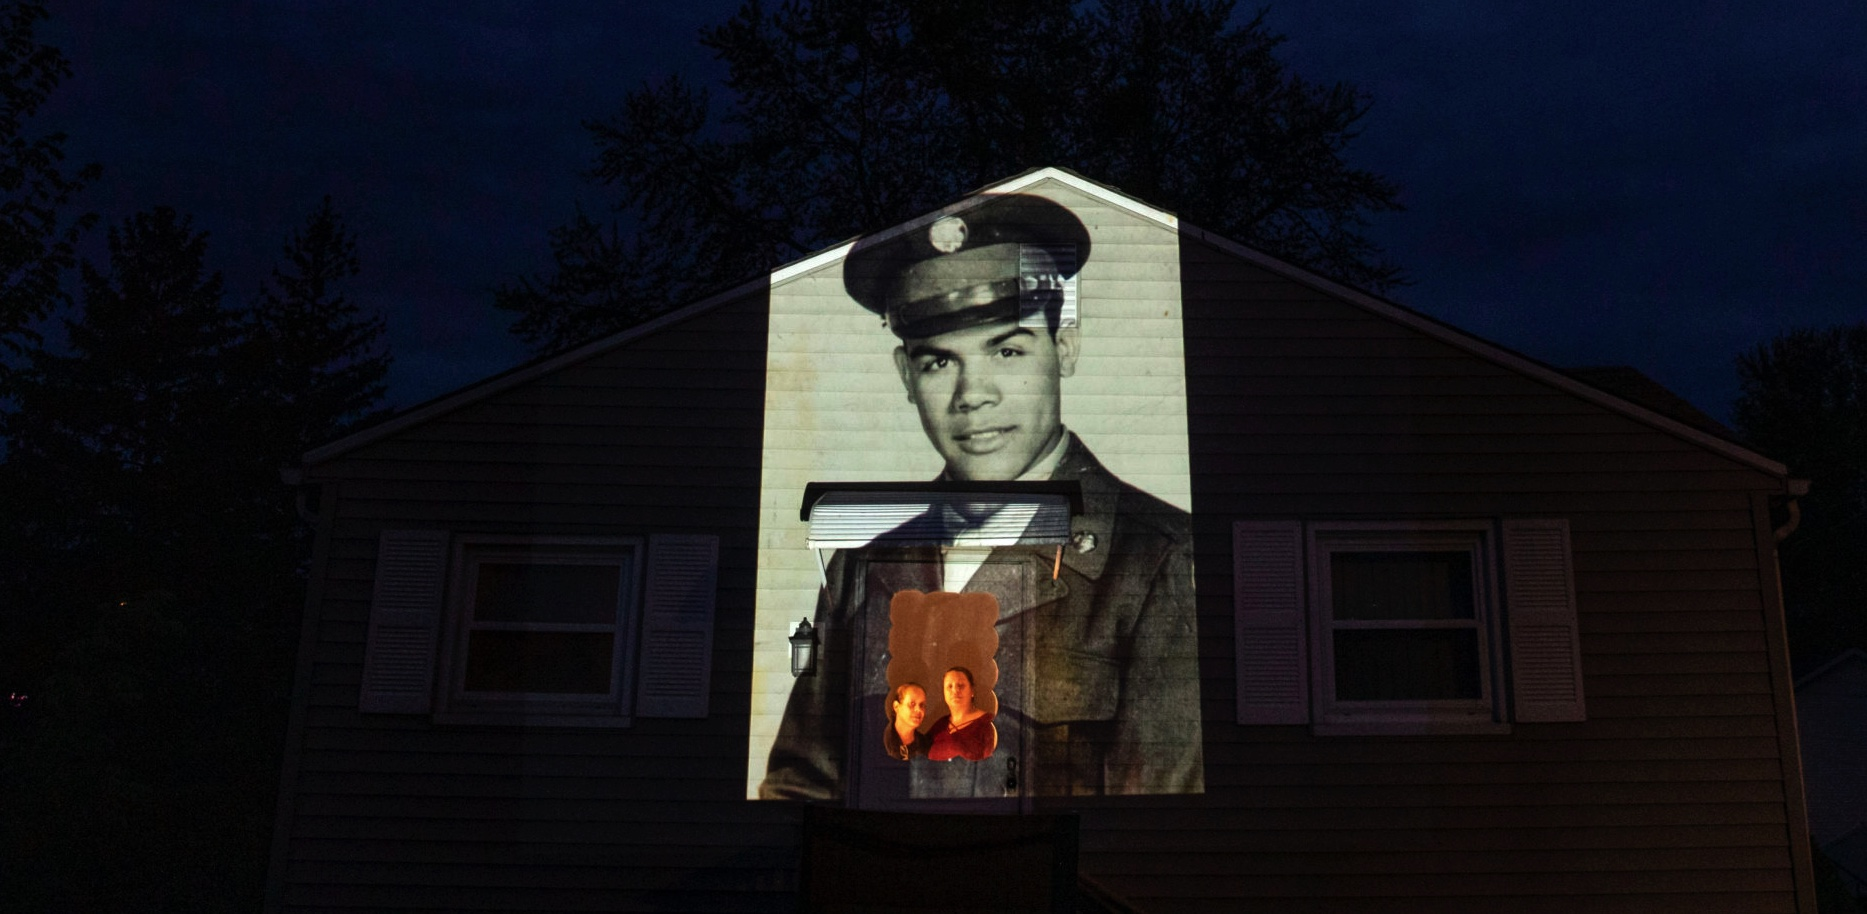 An image of veteran Samuel Melendez is projected onto the home of his nieces, Janet Ramirez, right, and Mary Perez, as they look out a doorway in Chicopee, Mass. (David Goldman/AP)